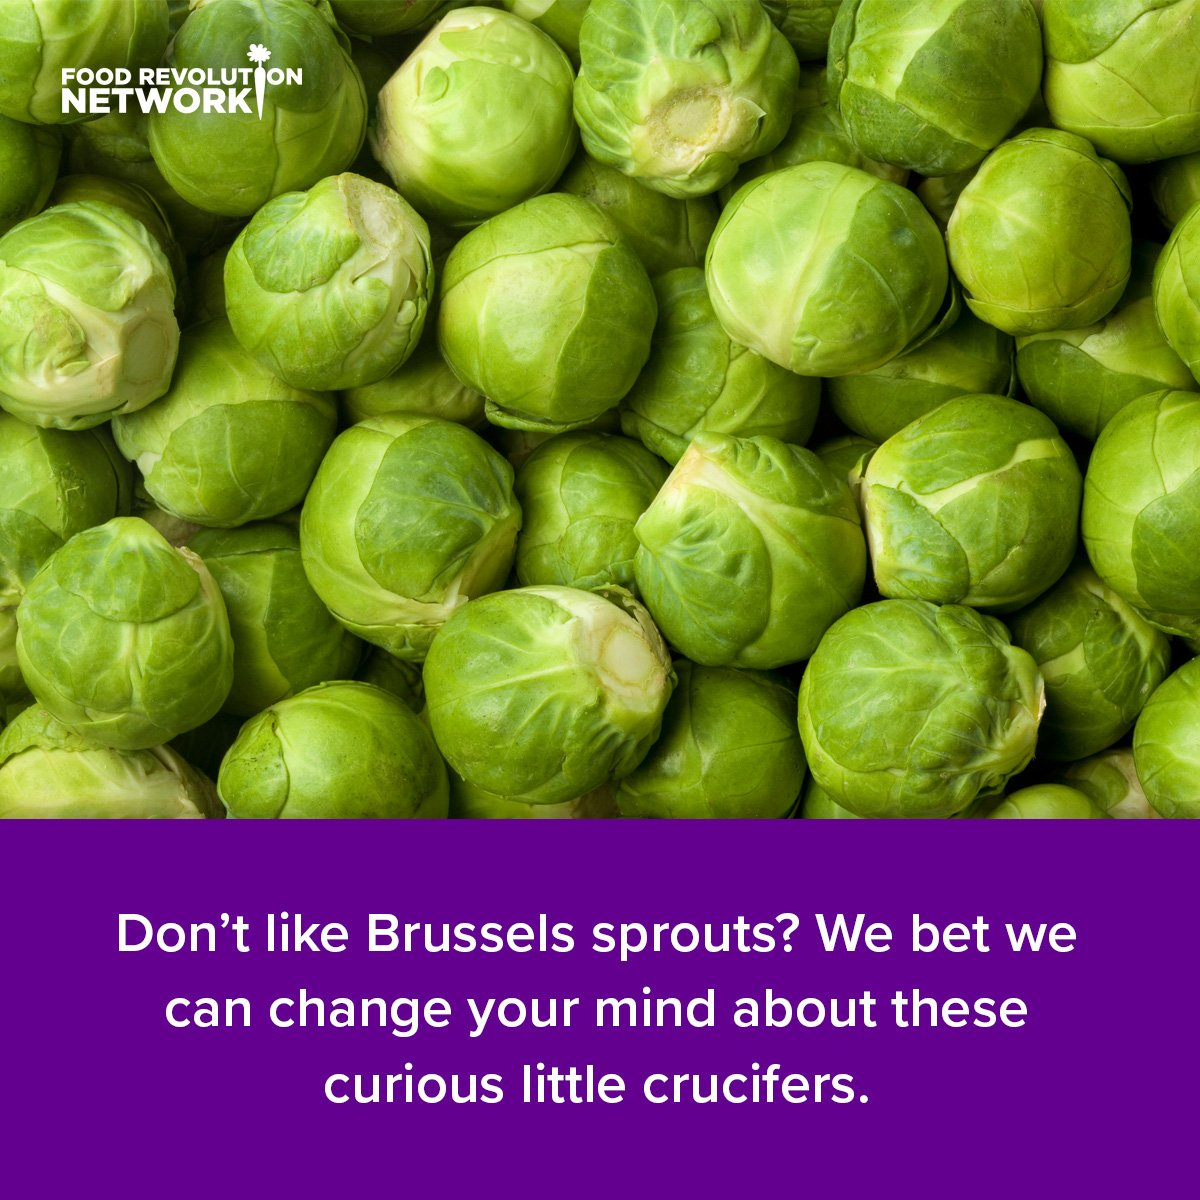 Don't like Brussels sprouts? We bet we can change your mind about these curious little crucifers.